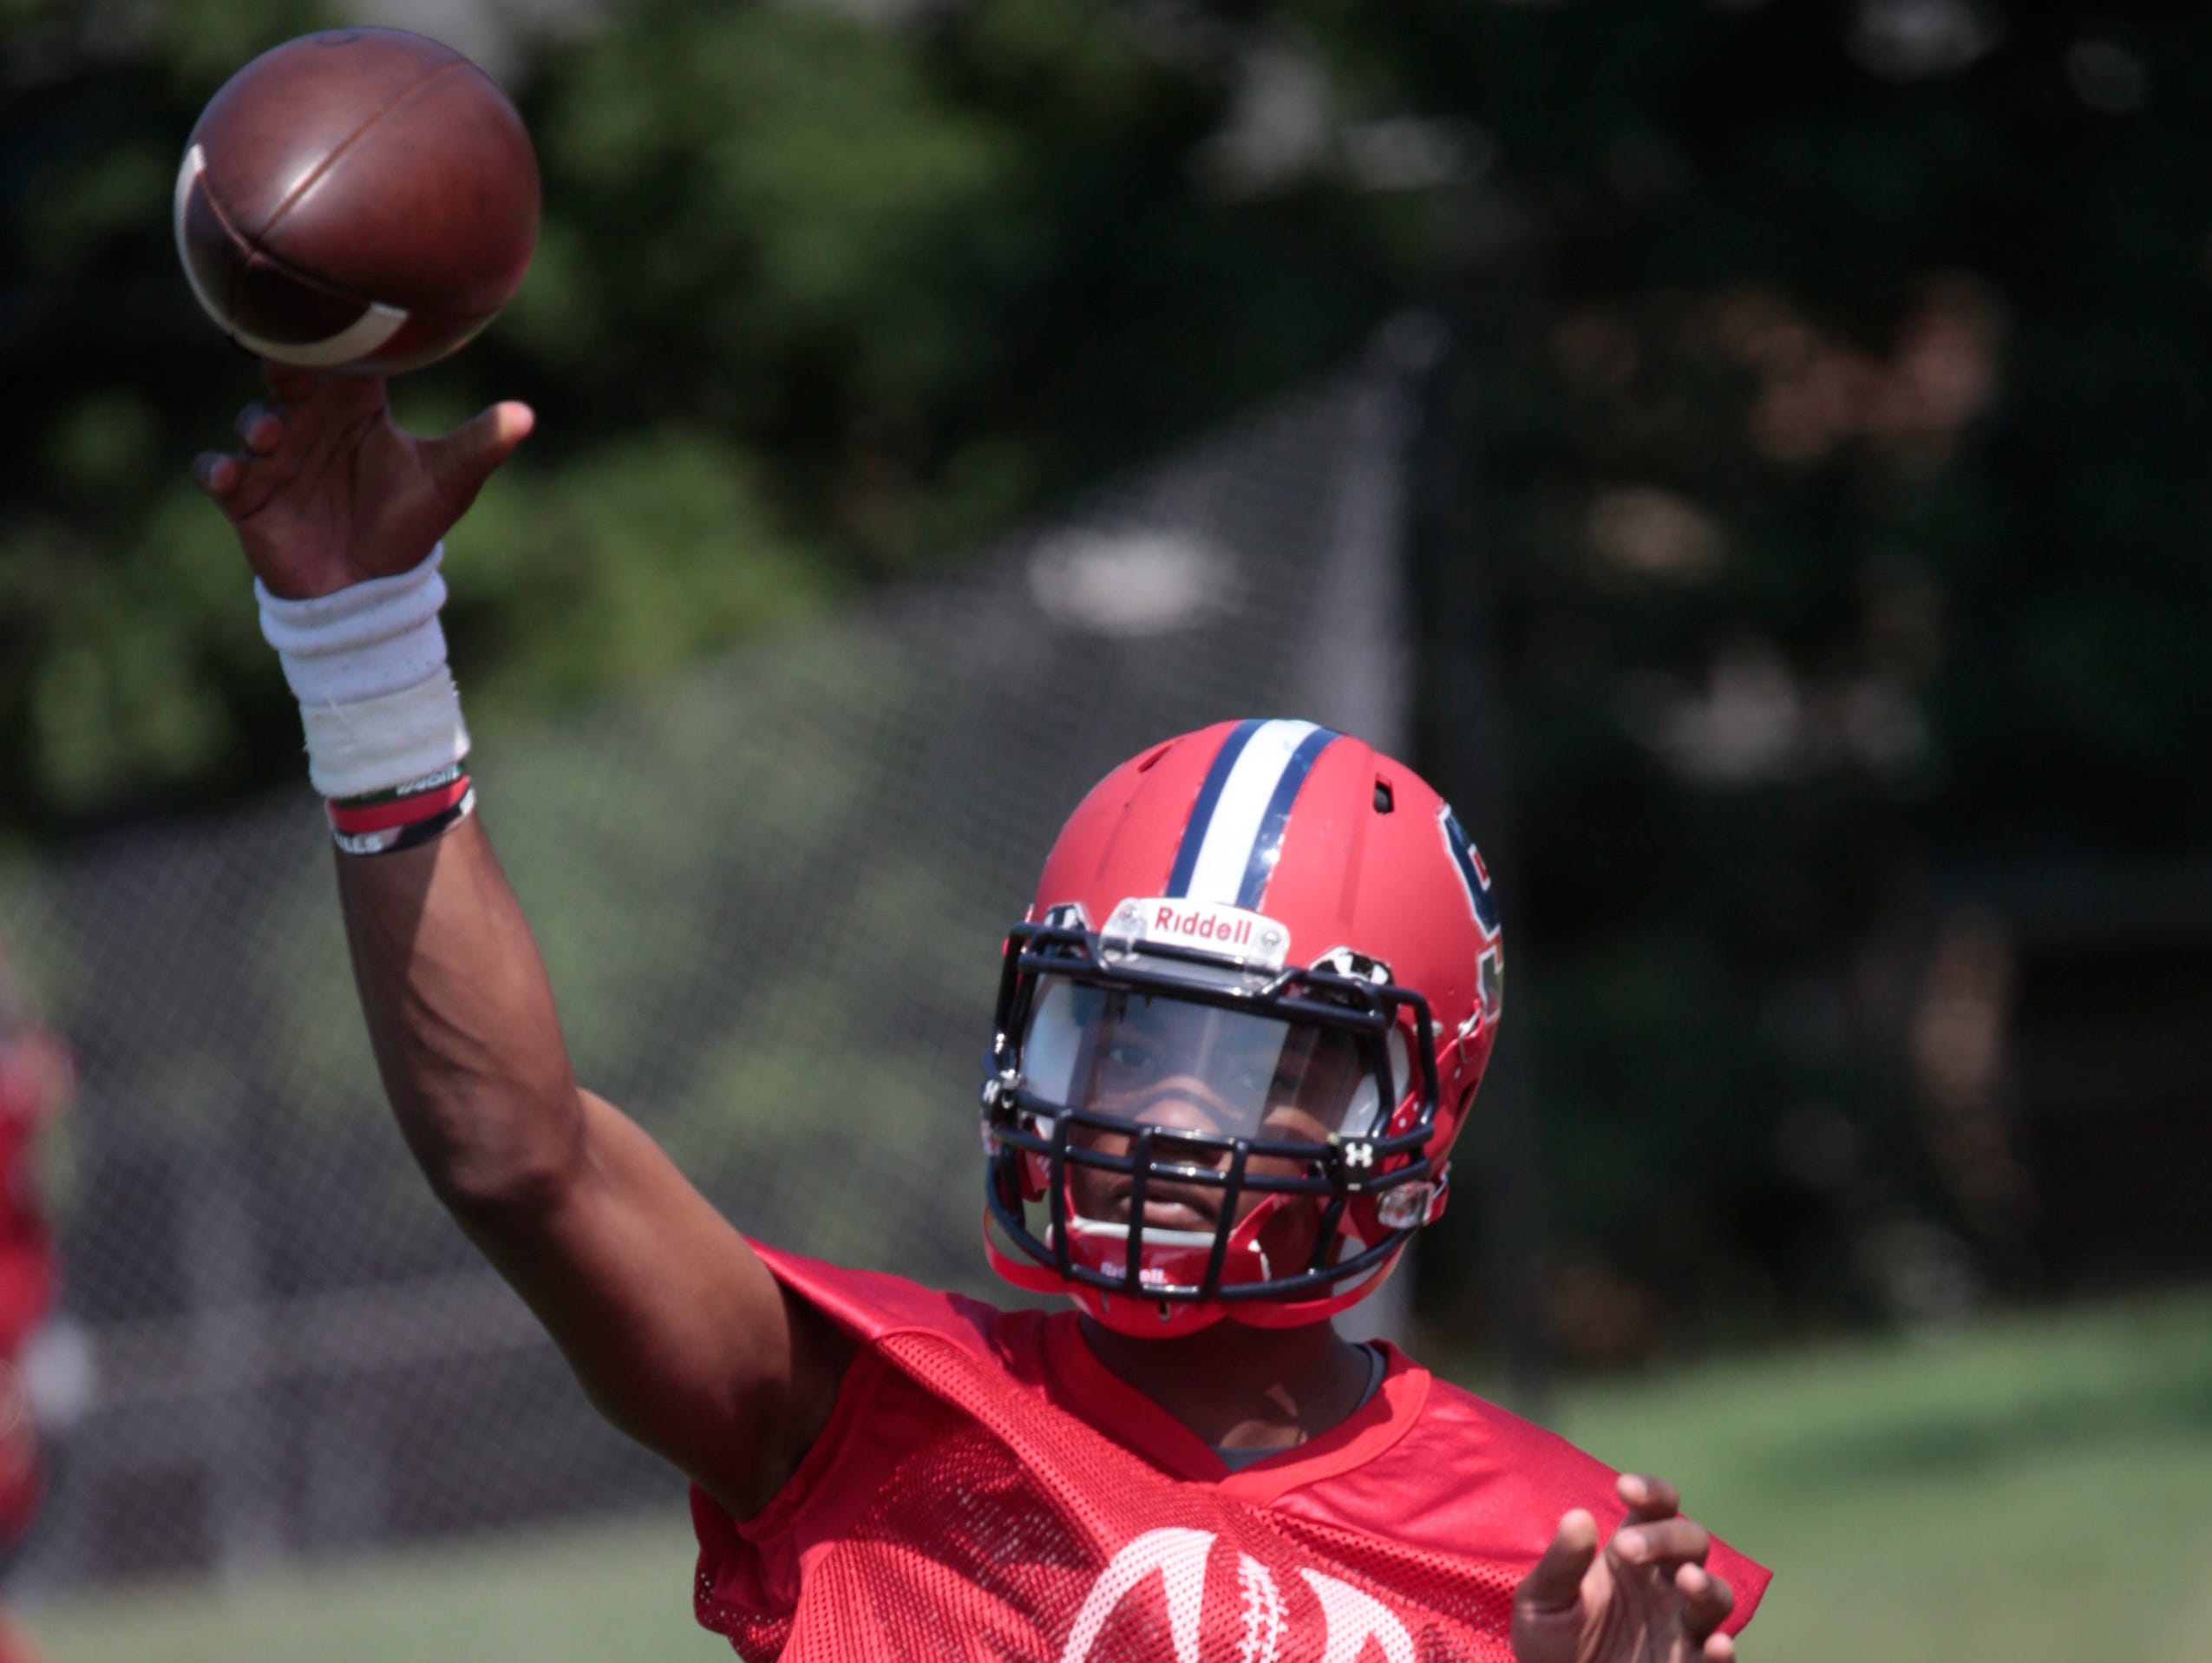 Archbishop Stepinac High School Football's QB Tyquell Fields goes through some drills during practice in White Plains on Aug. 24, 2015.